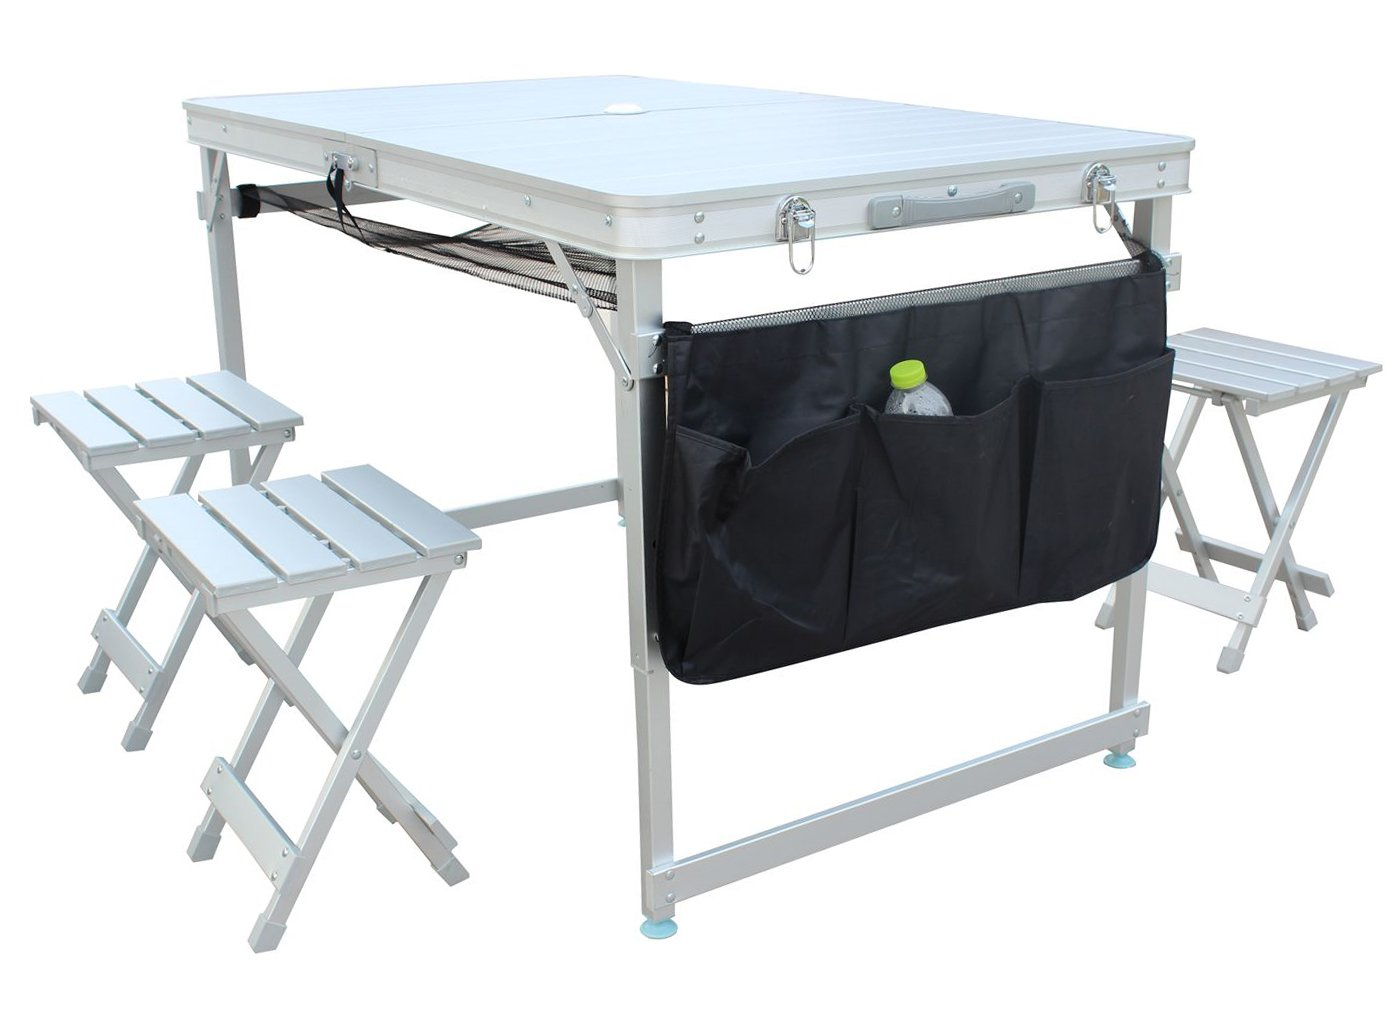 Sports God Pure Aluminum Portable Folding Picnic Table w/ 4 Seats, Storage Net and Carrying Case (Silver, 100% Aluminum)